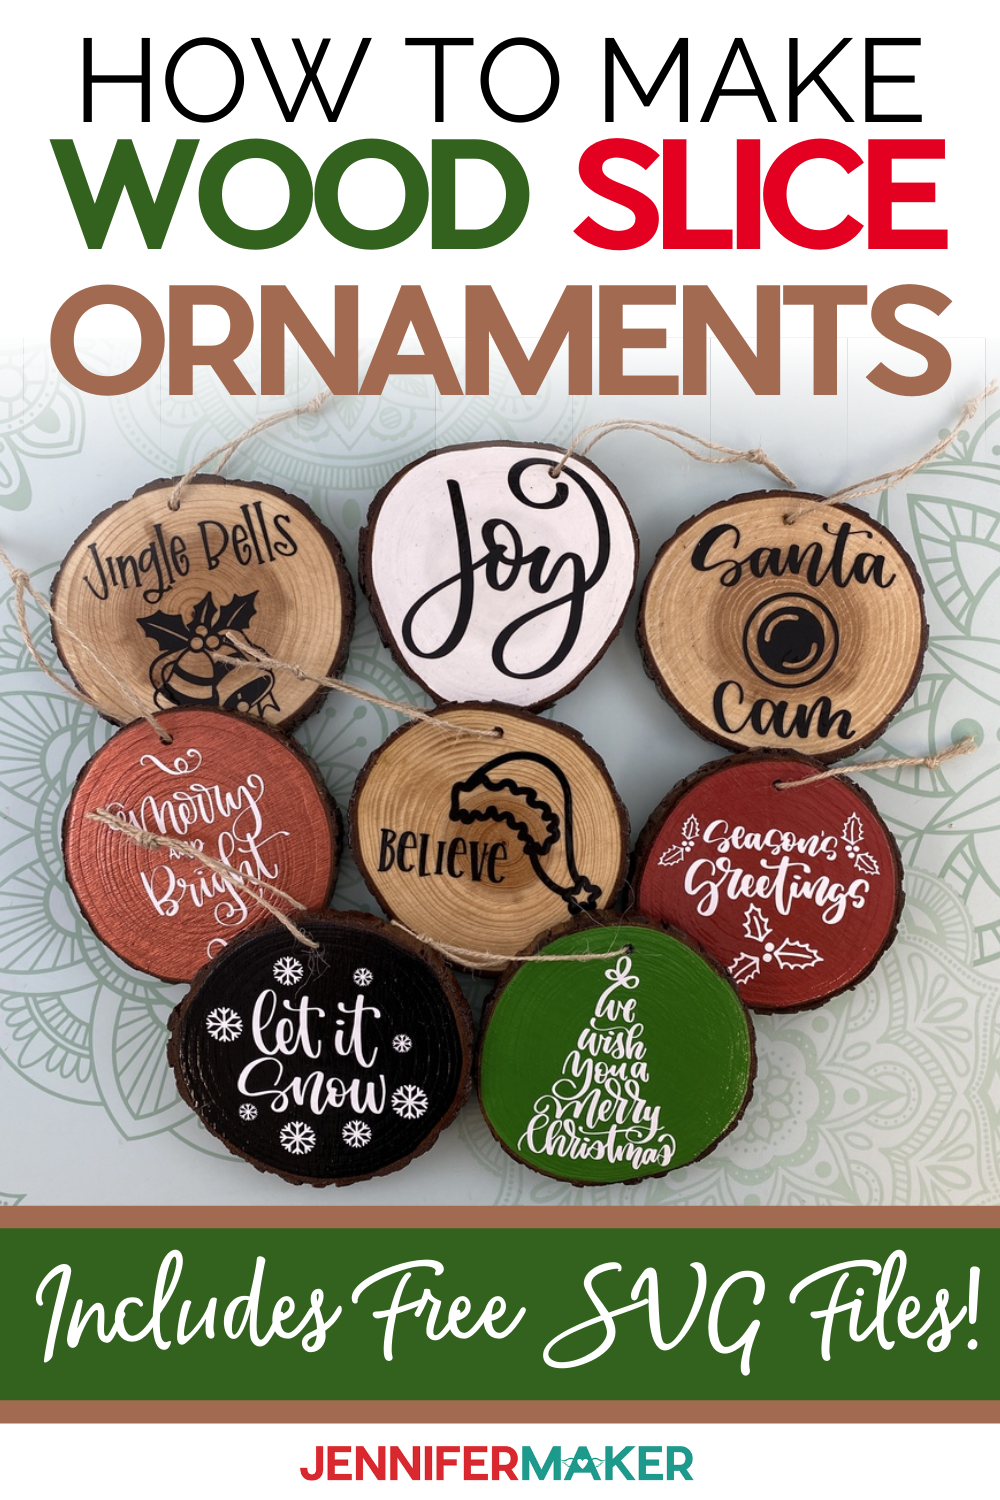 Wood Slice Ornaments With Festive Holiday Decals Jennifer Maker Wood Slice Ornament Wooden Ornaments Diy Wood Slices